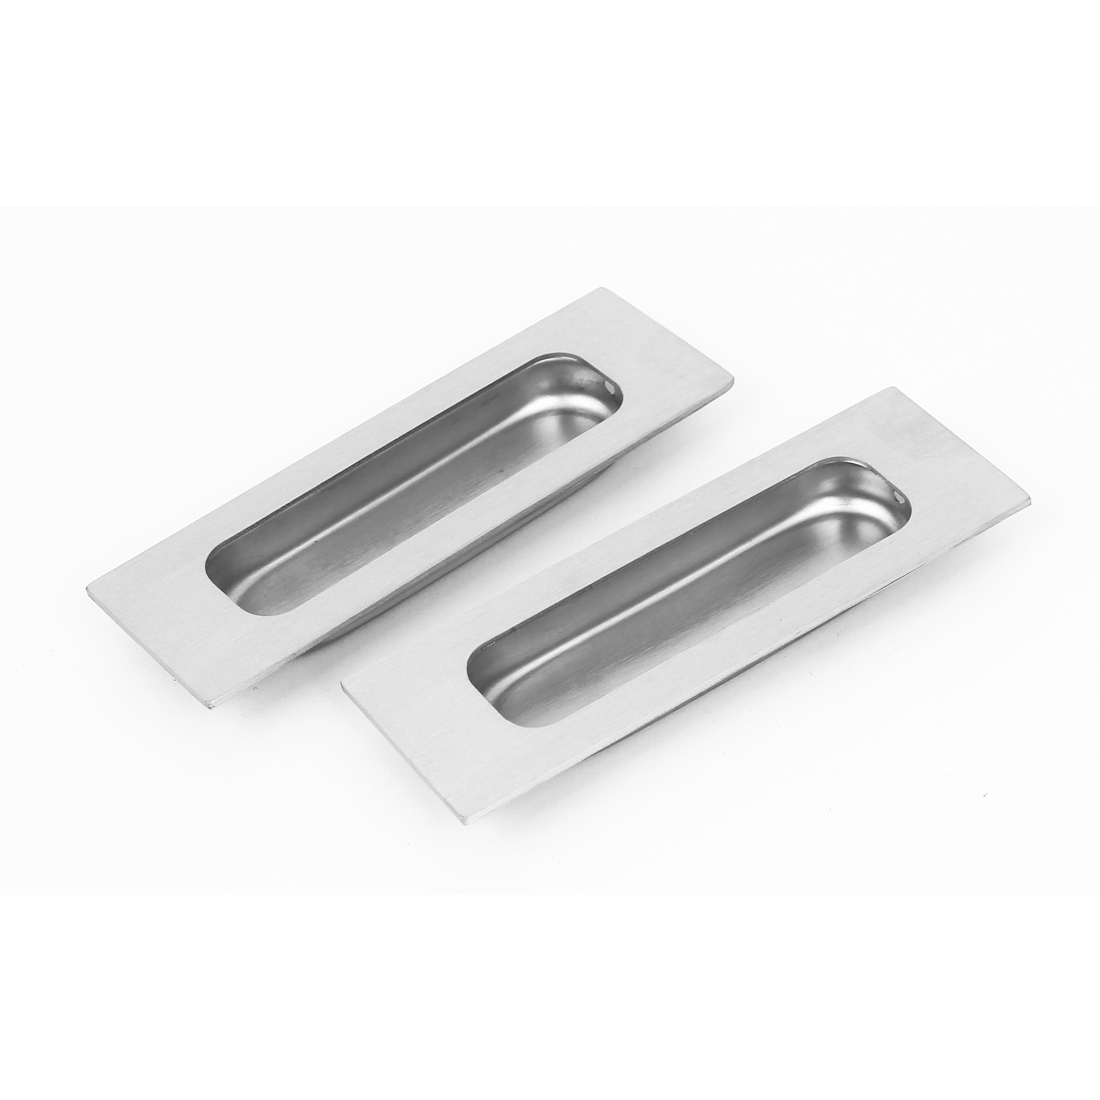 Cabinet Door 120mmx40mm Stainless Steel Recessed Flush Pull Handle Hardware 2Pcs